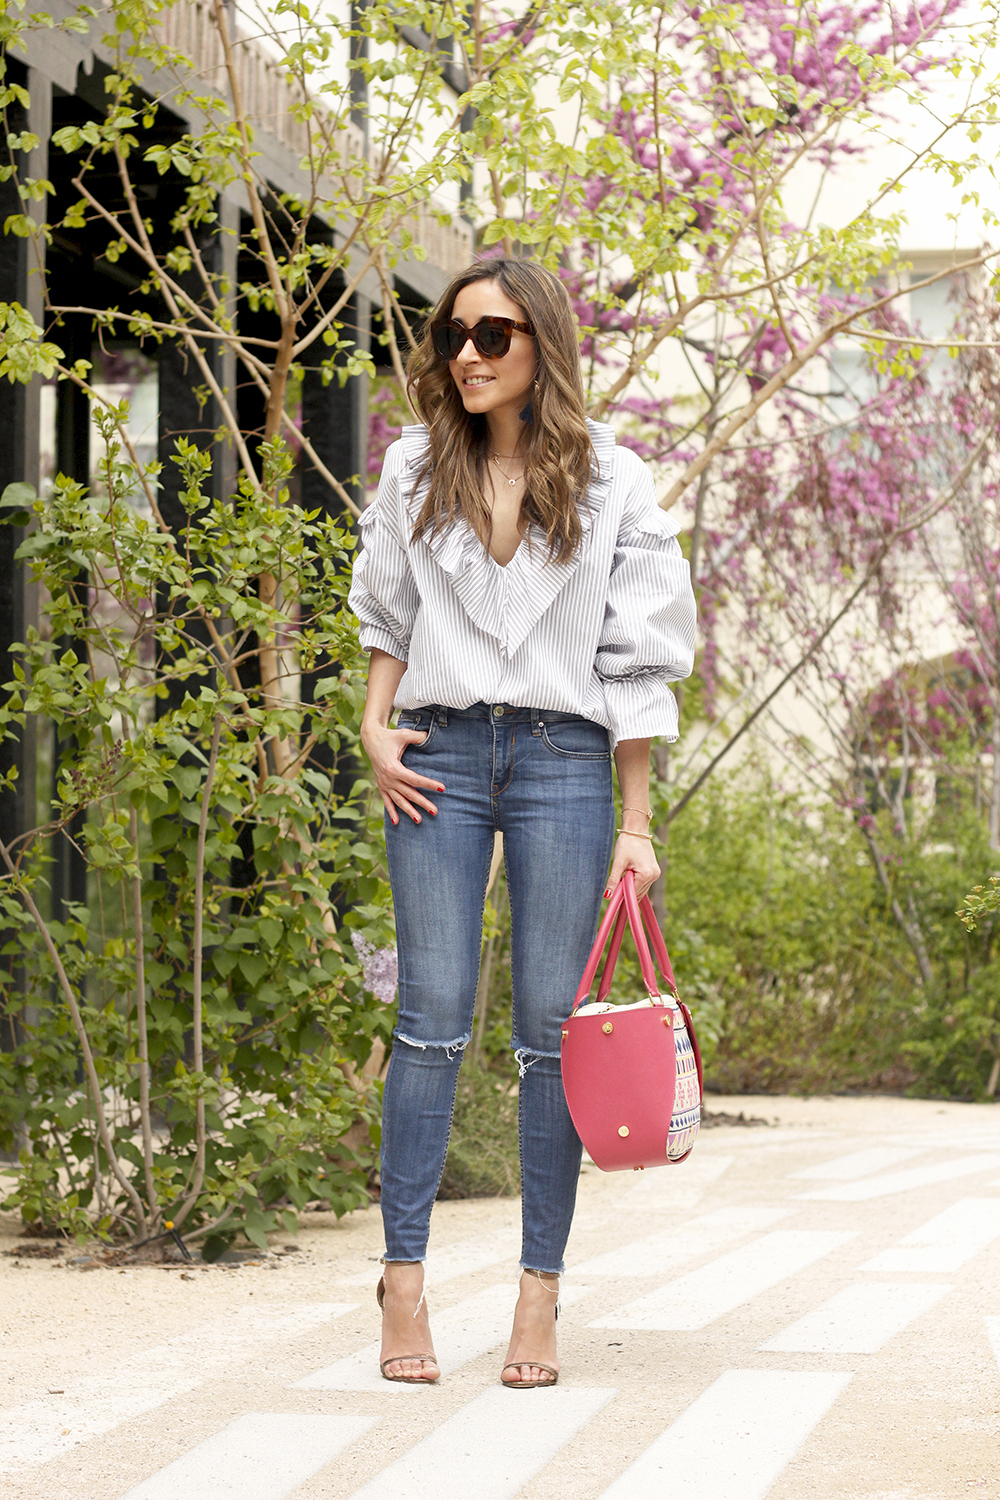 Ruffled striped shirt jeans céline sunnies sandals pamapamar bag accessories spring outfit style fashion04